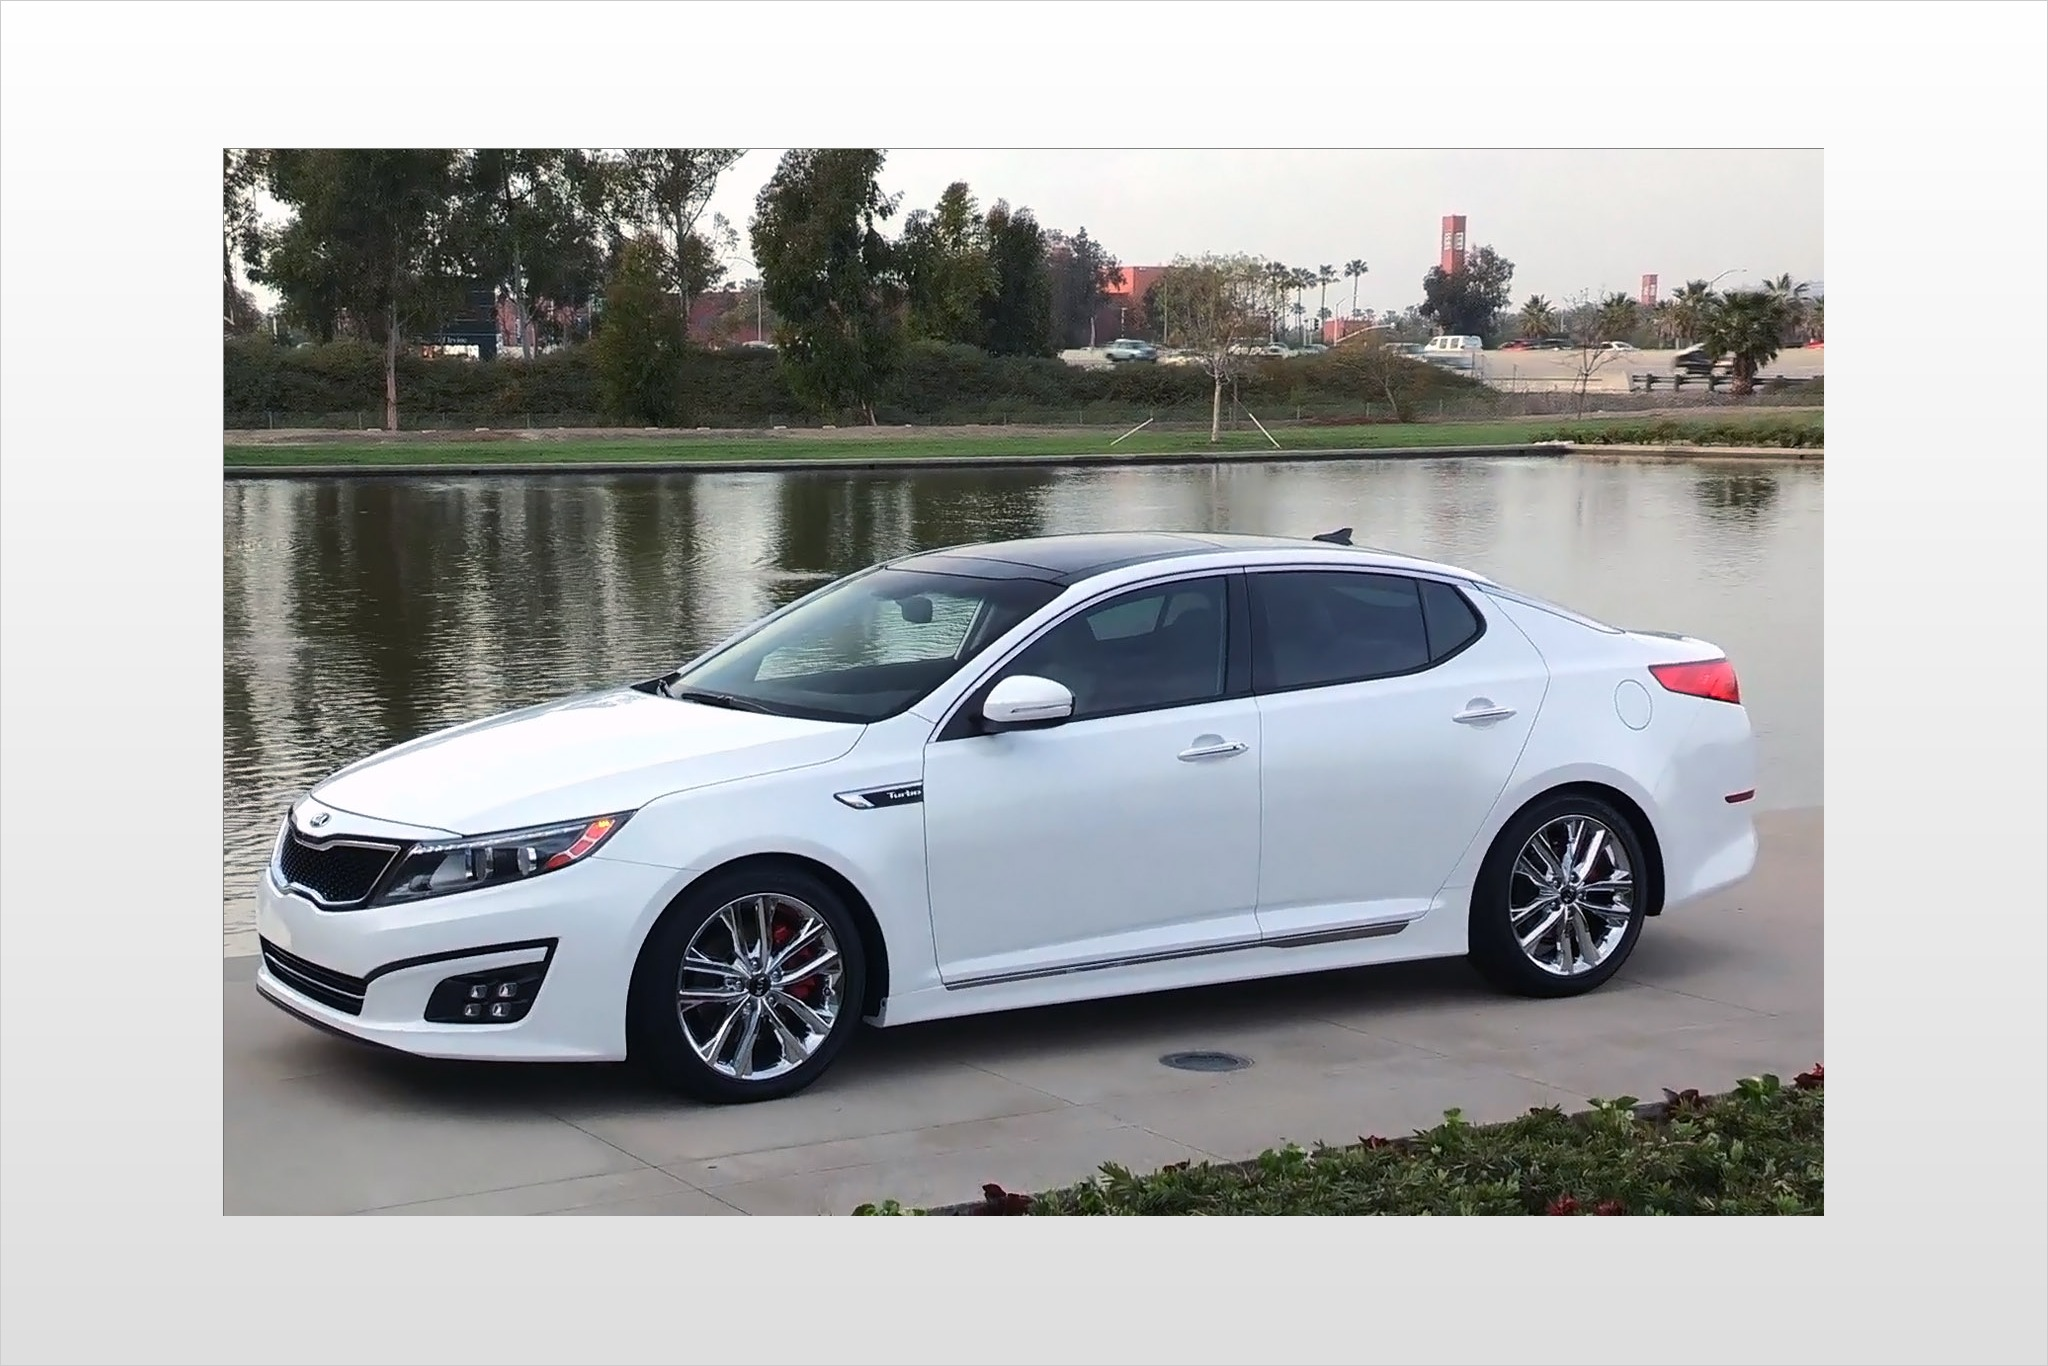 2014 Kia Optima Sedan SX  exterior #4